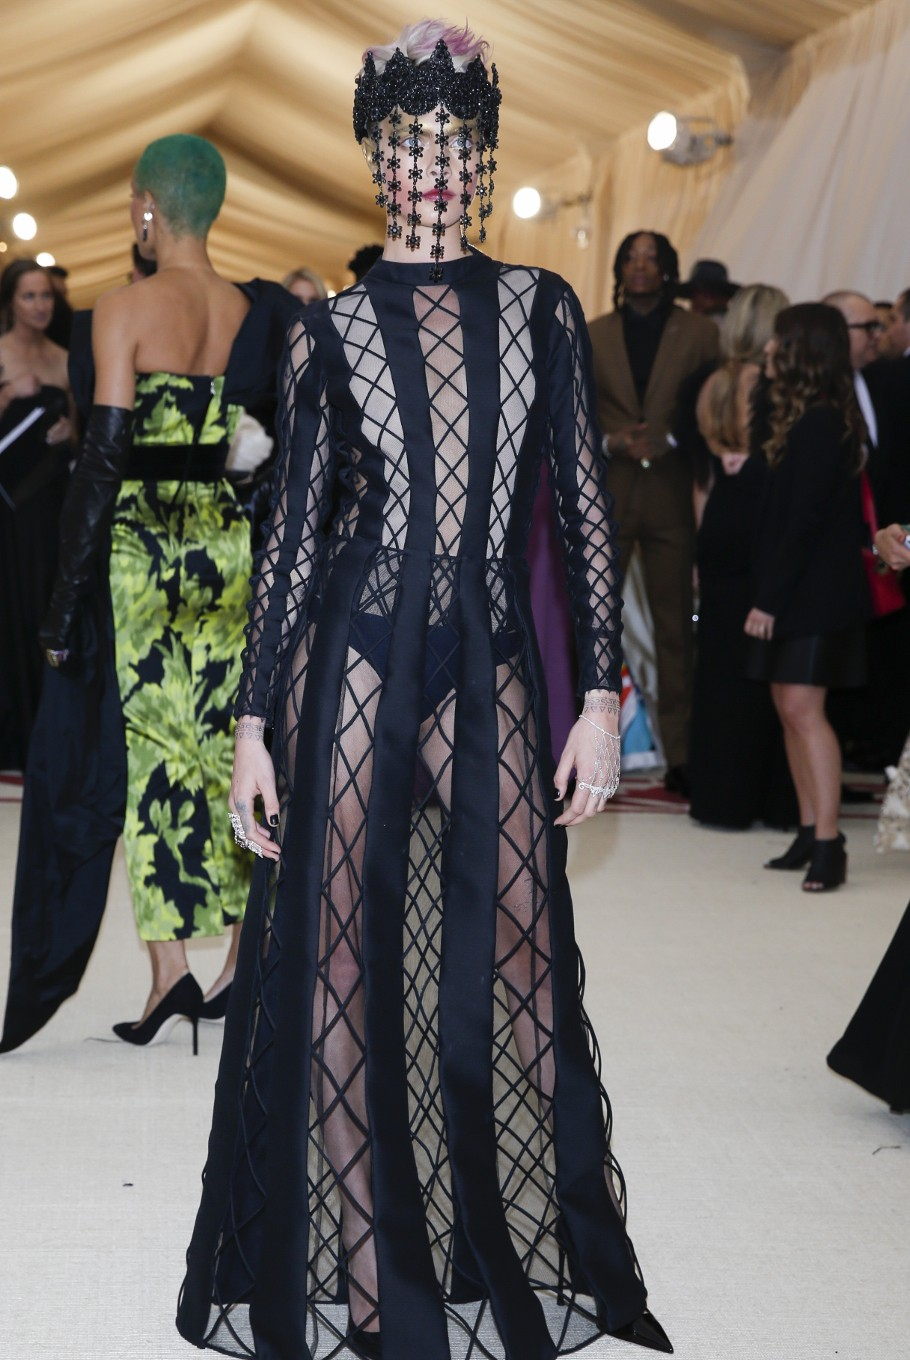 Model Cara Delevingne arrives at the Metropolitan Museum of Art Costume Institute Gala (Met Gala) to celebrate the opening of 'Heavenly Bodies: Fashion and the Catholic Imagination' in the Manhattan borough of New York, U.S., May 7, 2018.